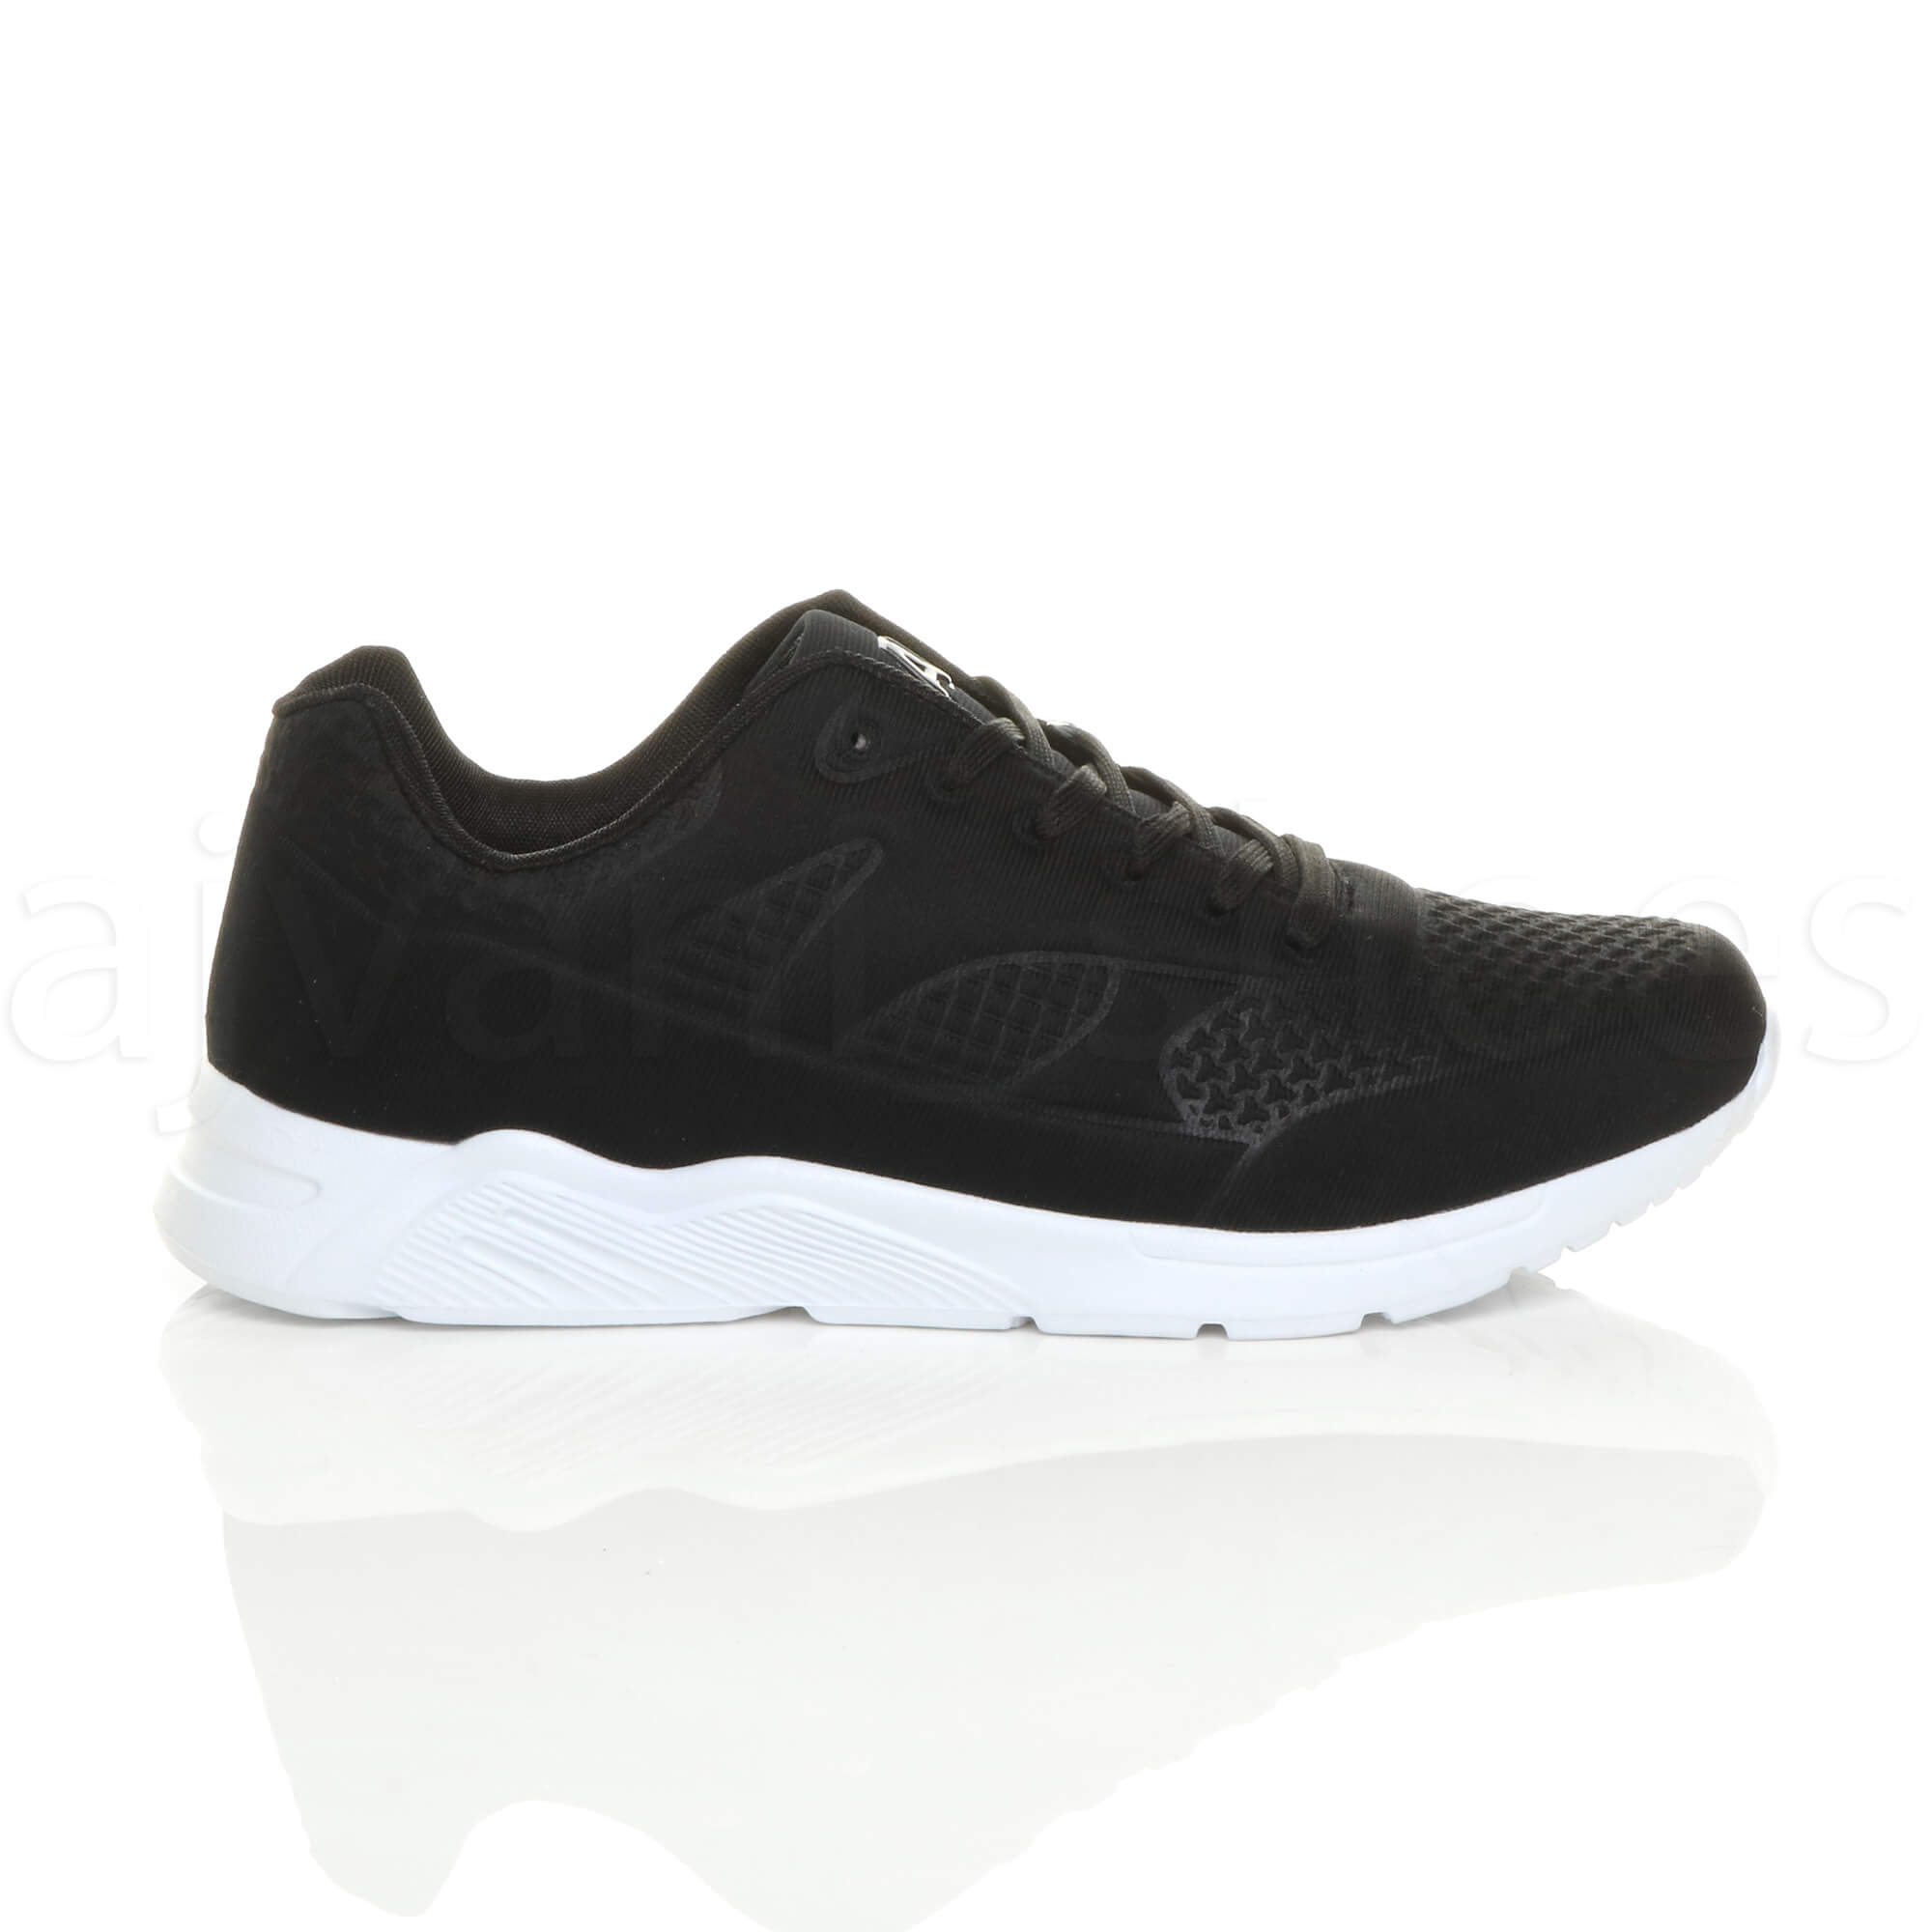 MENS-LACE-UP-FLEXIBLE-SOLE-RUNNING-SPORT-GYM-FITNESS-TRAINERS-SNEAKERS-SIZE miniatuur 3